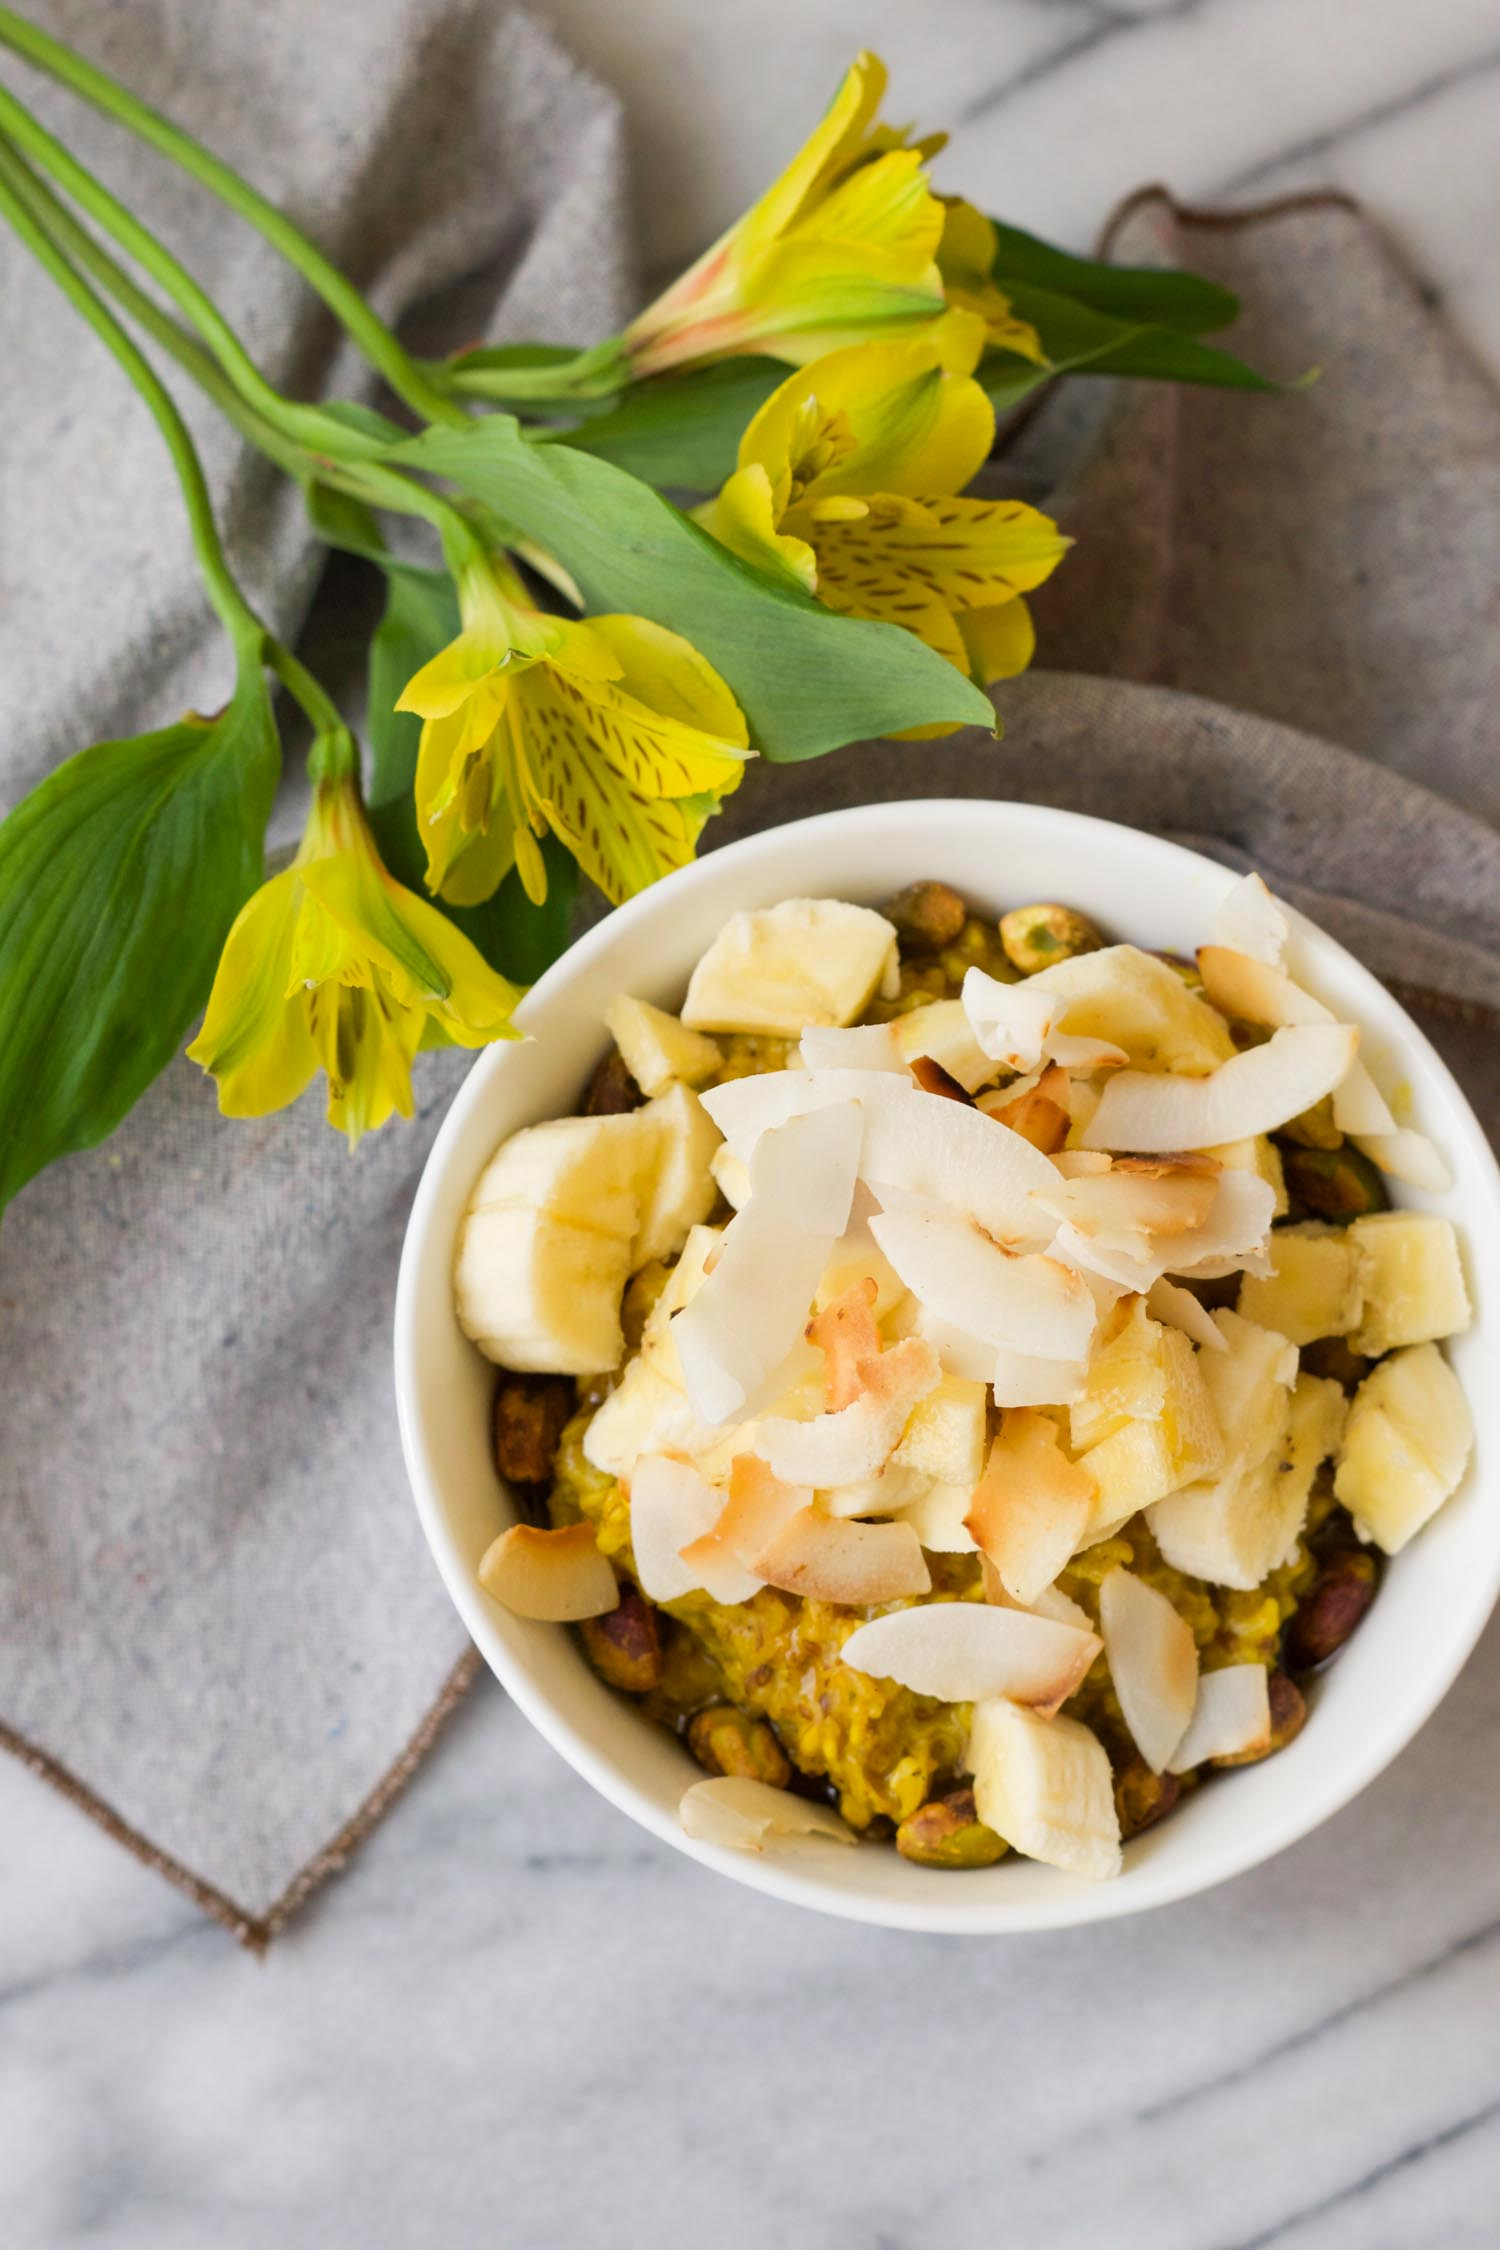 Vegan & Gluten Free Golden Banana Oatmeal topped with banana, pistachios, and toasted coconut chips. by Beautiful Ingredient